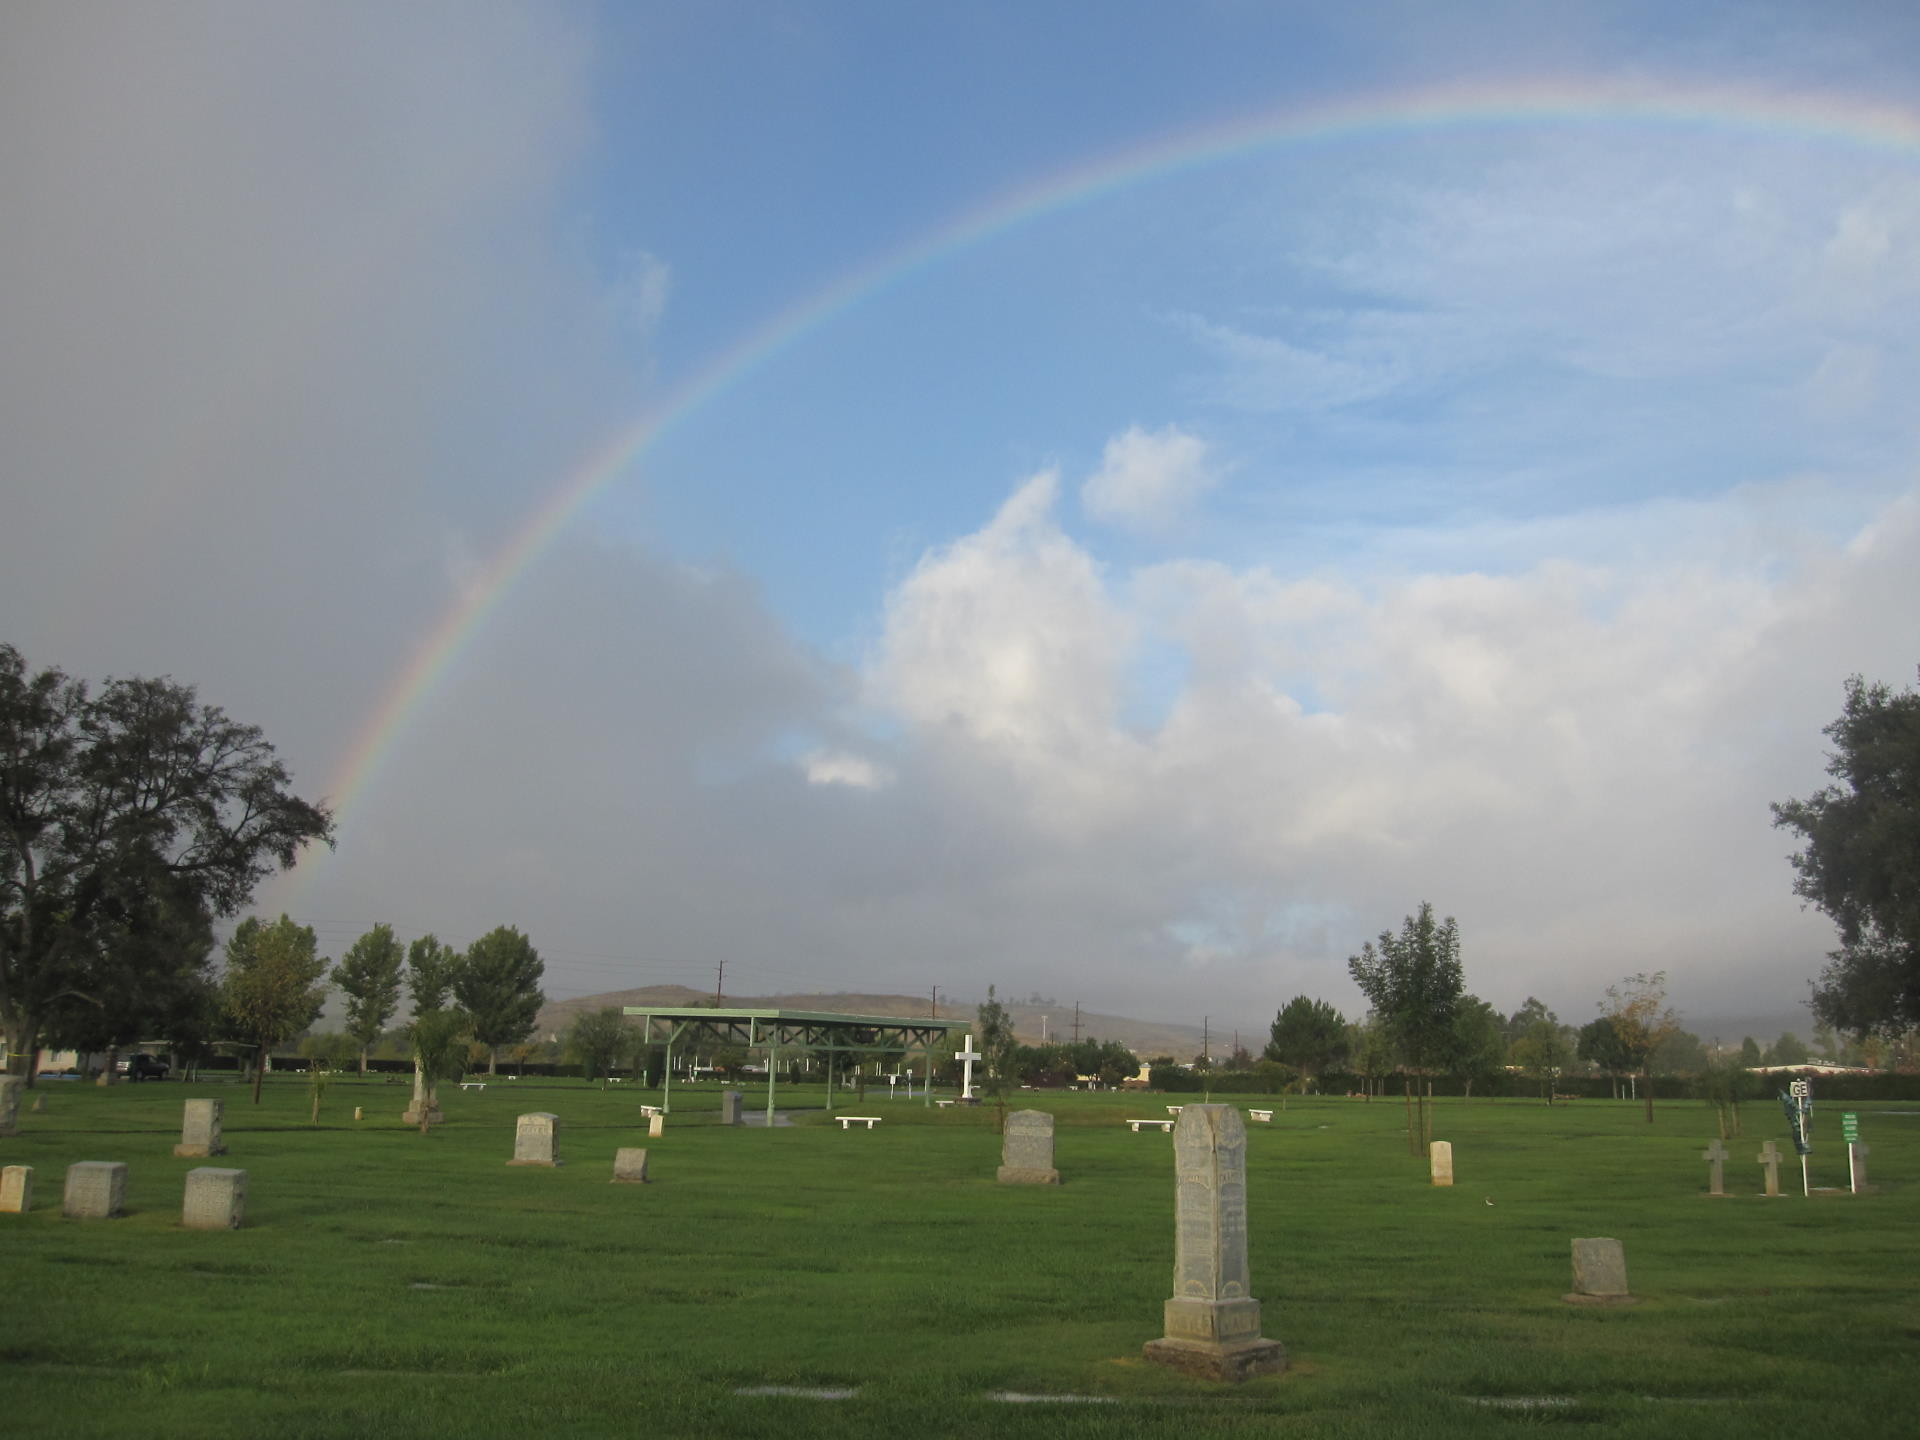 rainbow arching over the cemetery